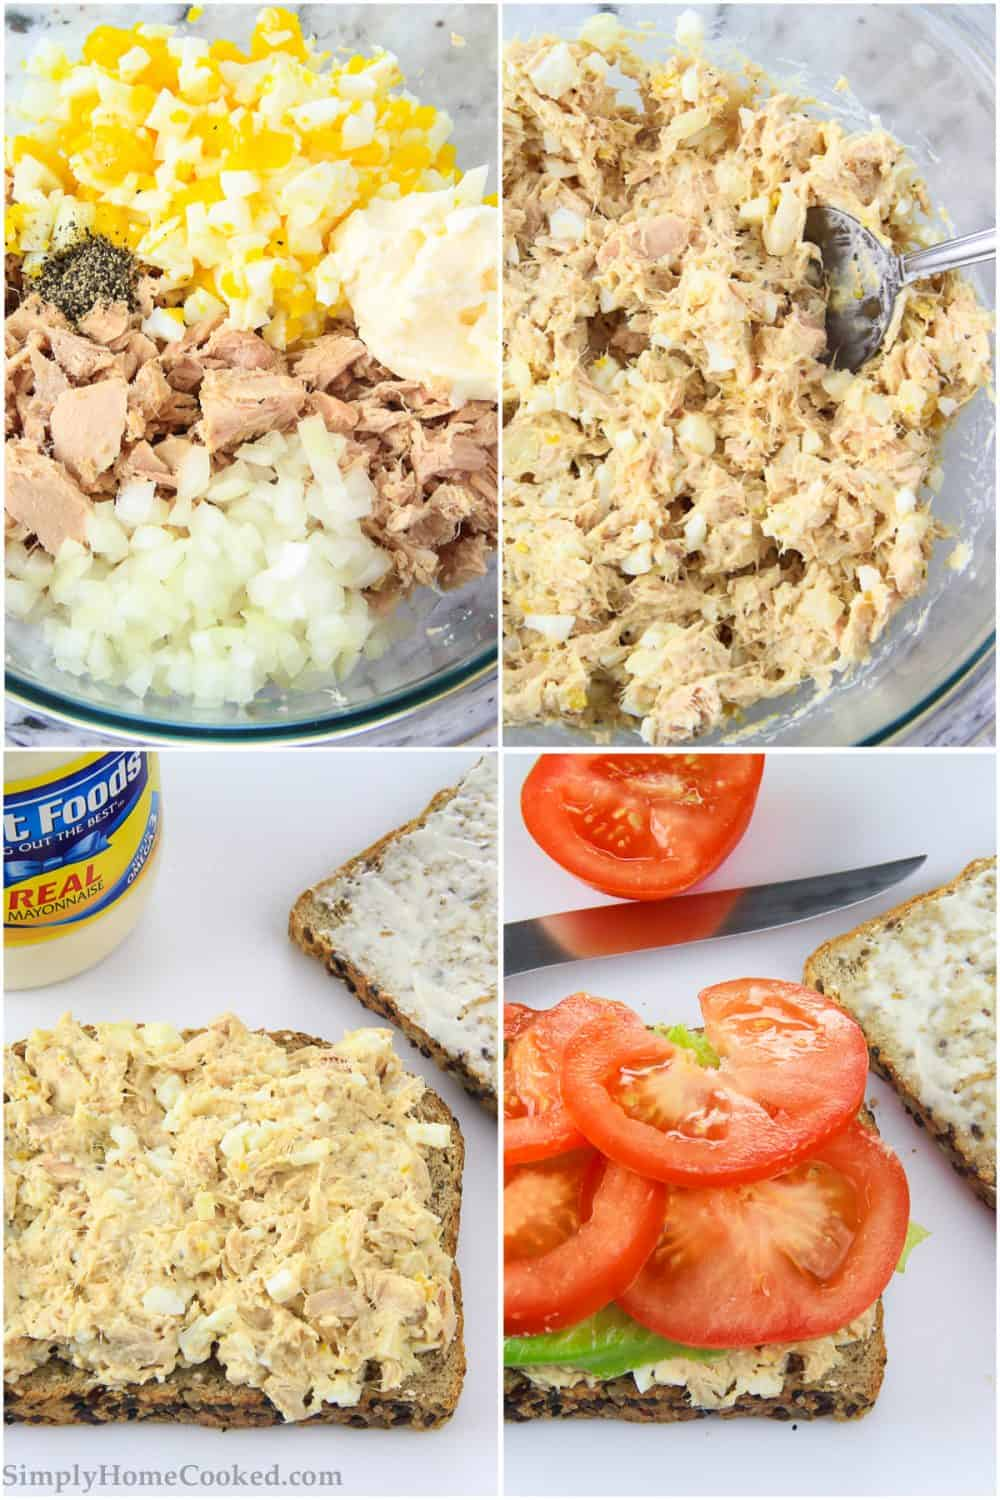 steps to make a tuna salad sandwich. tuna, hard boiled egg, and chopped onion in a glass bowl.